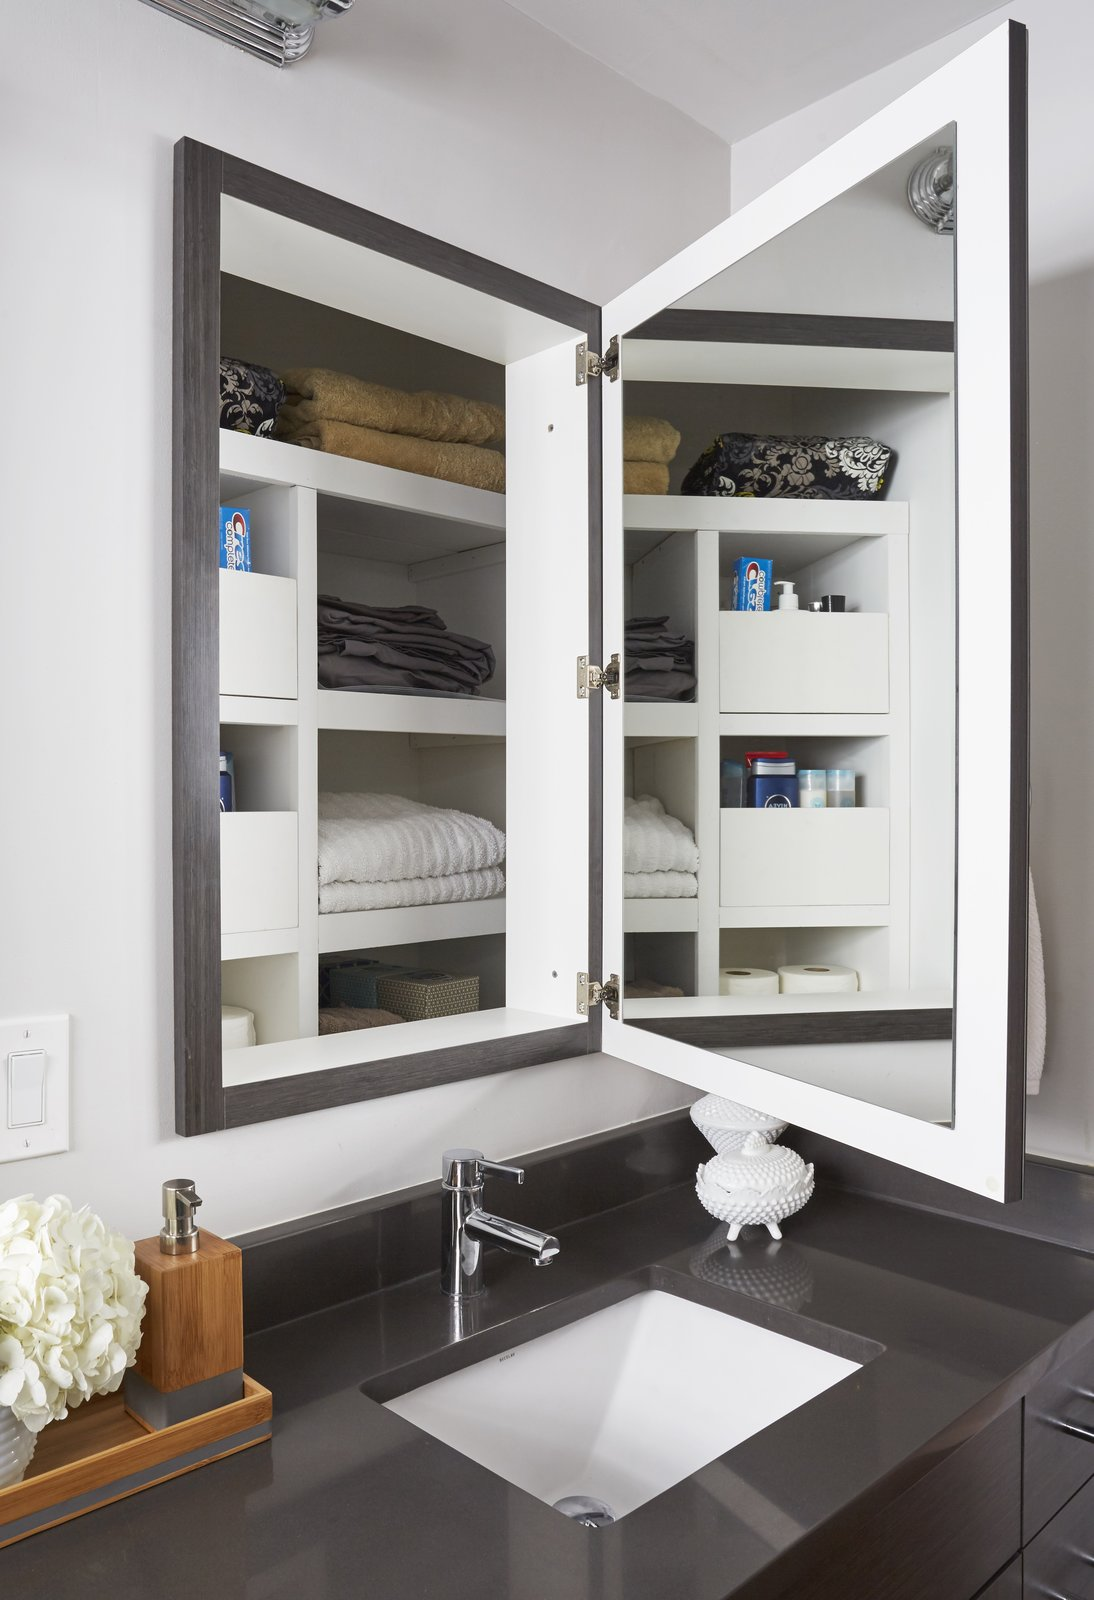 Bath Room, Wall Lighting, and Undermount Sink Though they made these changes to the vanity area, they preserved the depth behind the medicine cabinets for linen storage.  Photo 10 of 12 in Clever Storage Solutions and a Shifted Layout Revive This 1950s Chicago Home